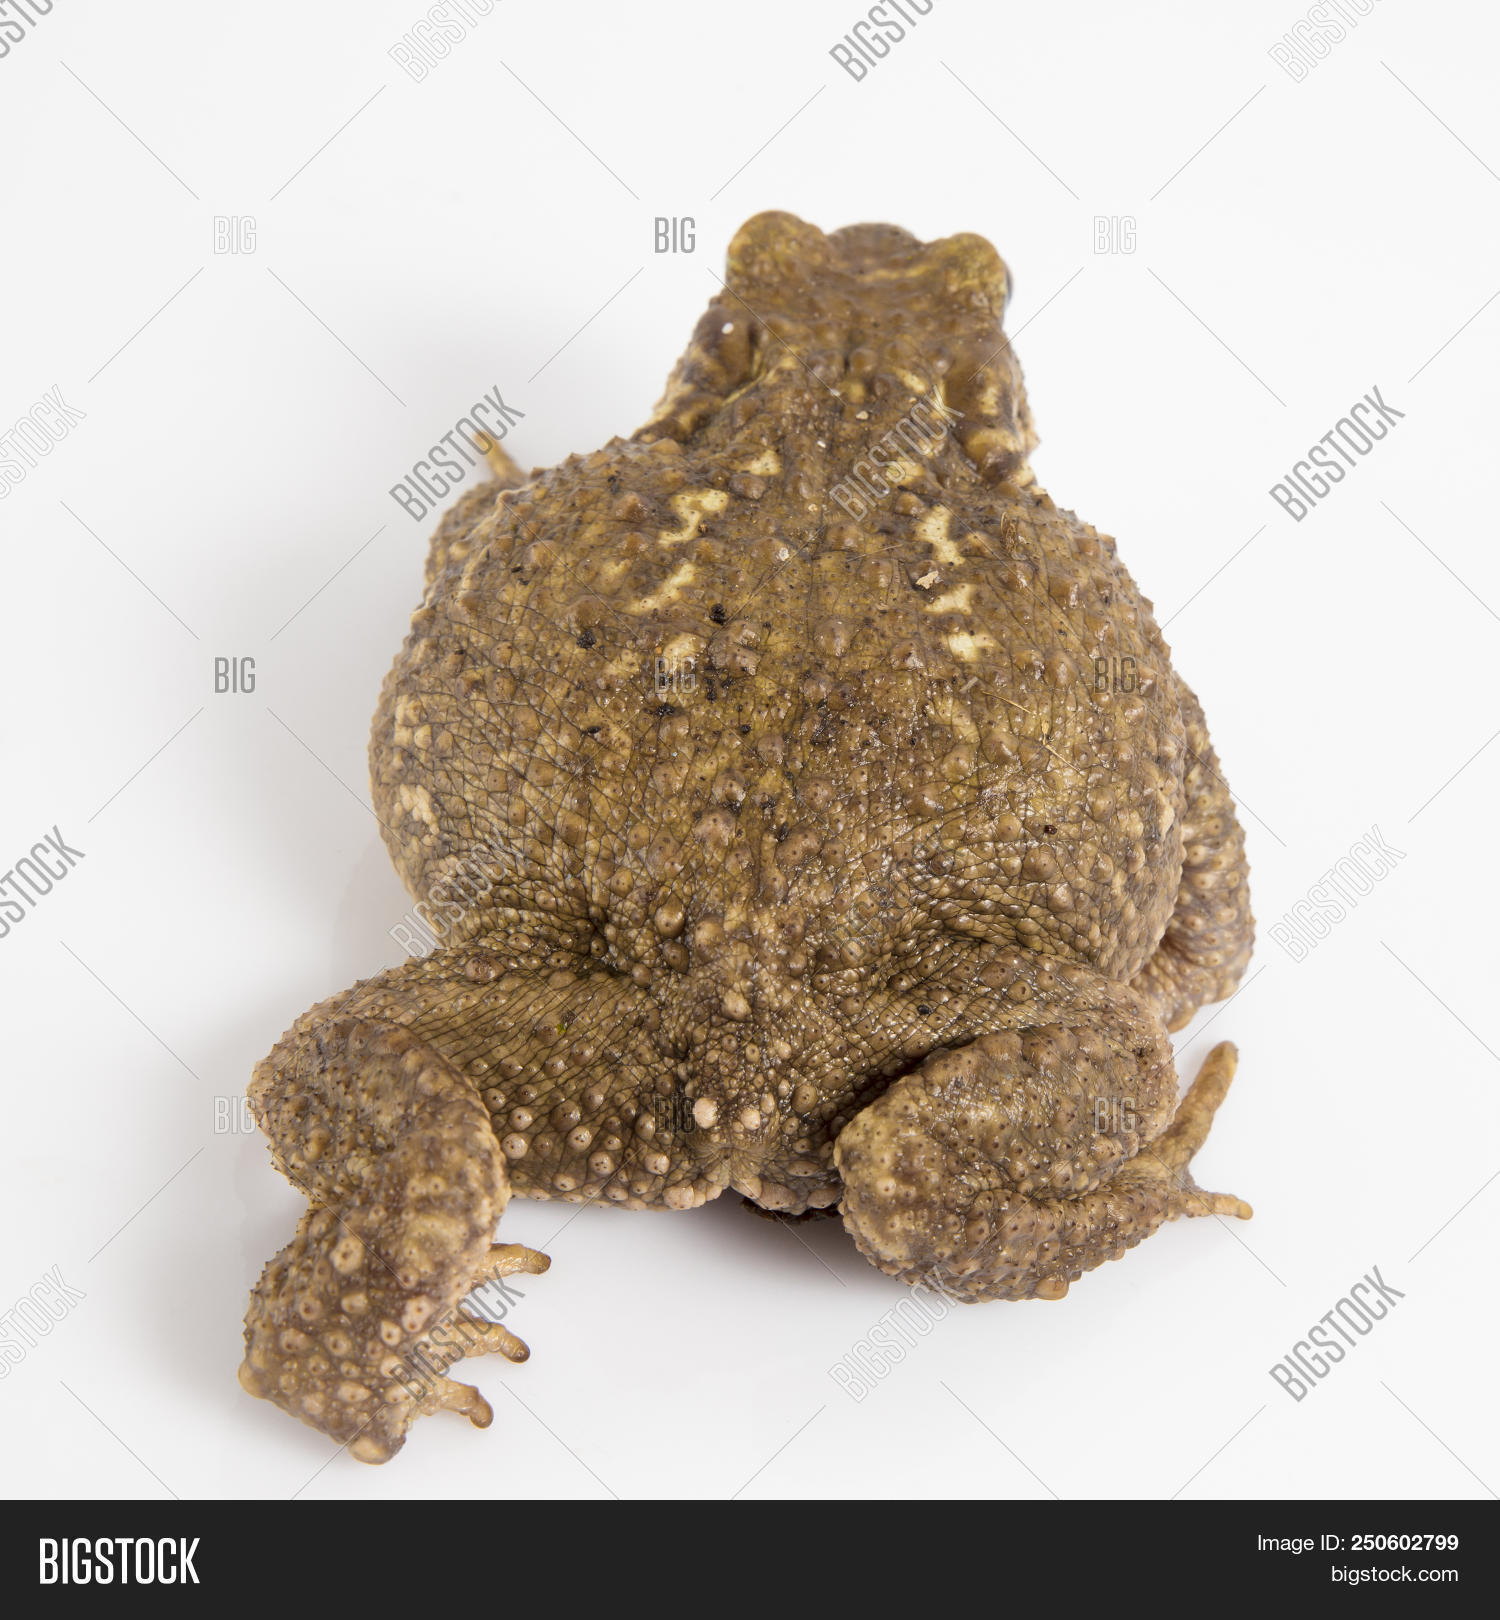 amphibian,animal,background,brown,bufo,closeup,common,creature,cut-out,cutout,european,frog,full,horizontal,indoors,isolated,length,looking,nature,no,on,one,people,shot,side,species,studio,themes,toad,view,warts,white,wild,wildlife